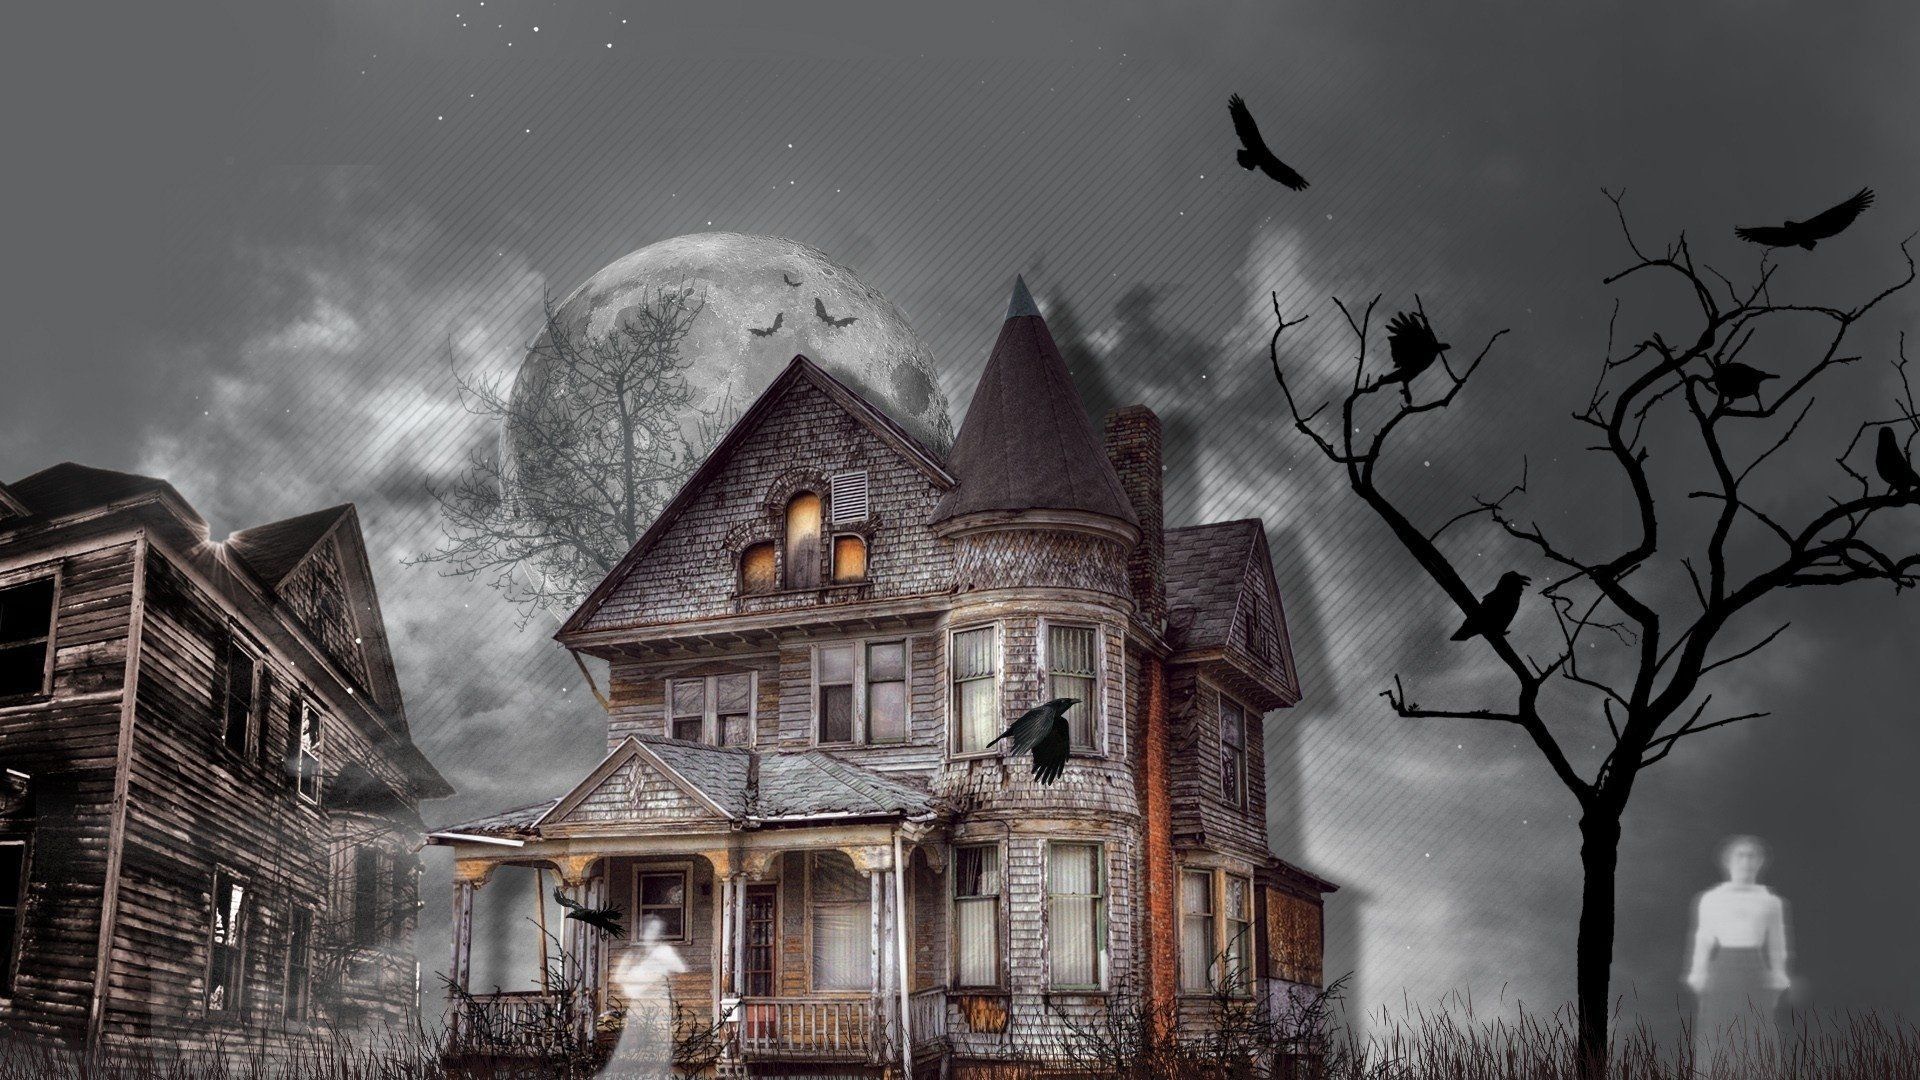 1920x1080 Haunted House Wallpaper Background Image. View